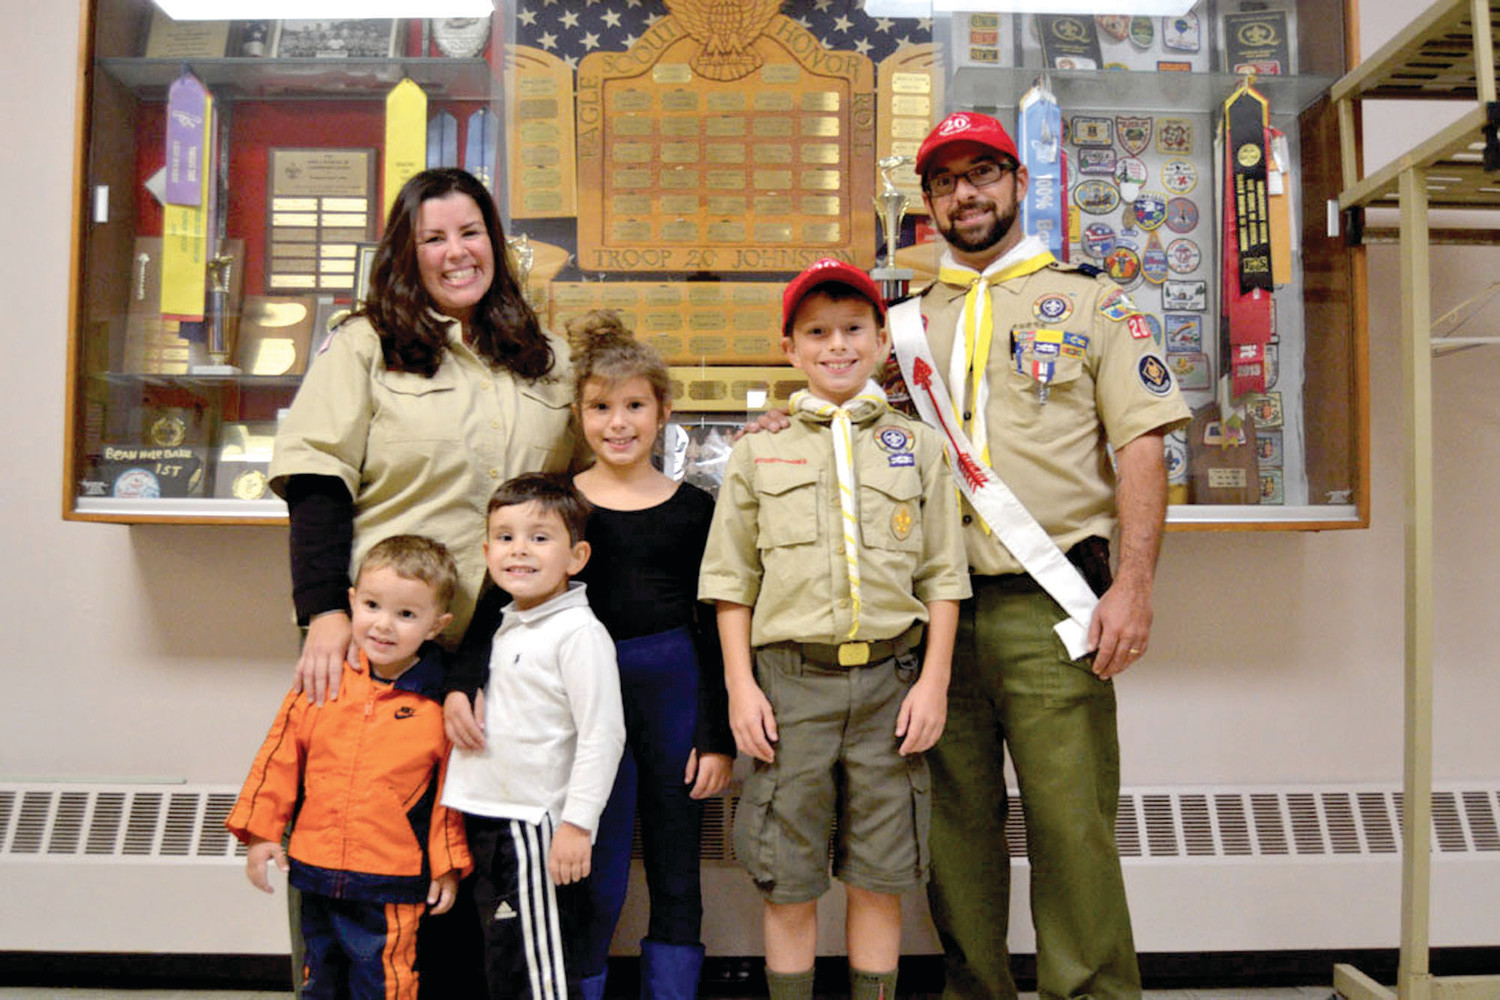 CUB SCOUT FAMILY OF TOMORROW: Cub Scout leaders Toni and Greg Pagliarini are joined by their children Andrew, Sean, Evelyn and David. Thanks to recent changes, all members of the Pagliarini family may soon become Boy Scouts.